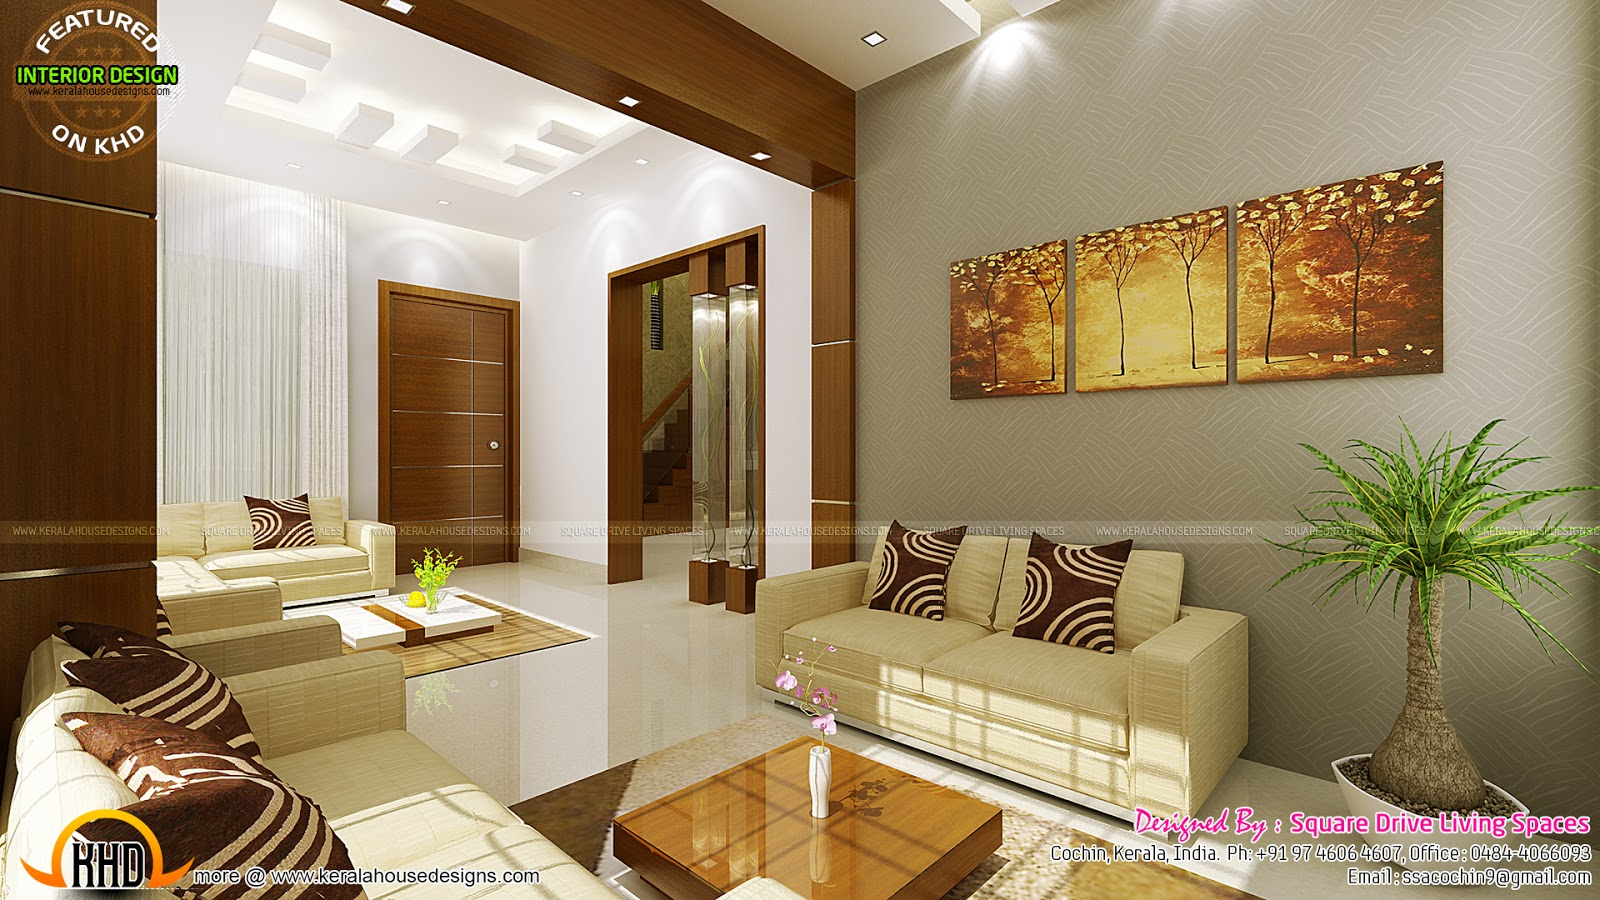 Contemporary kitchen dining and living room kerala home for Interior design ideas